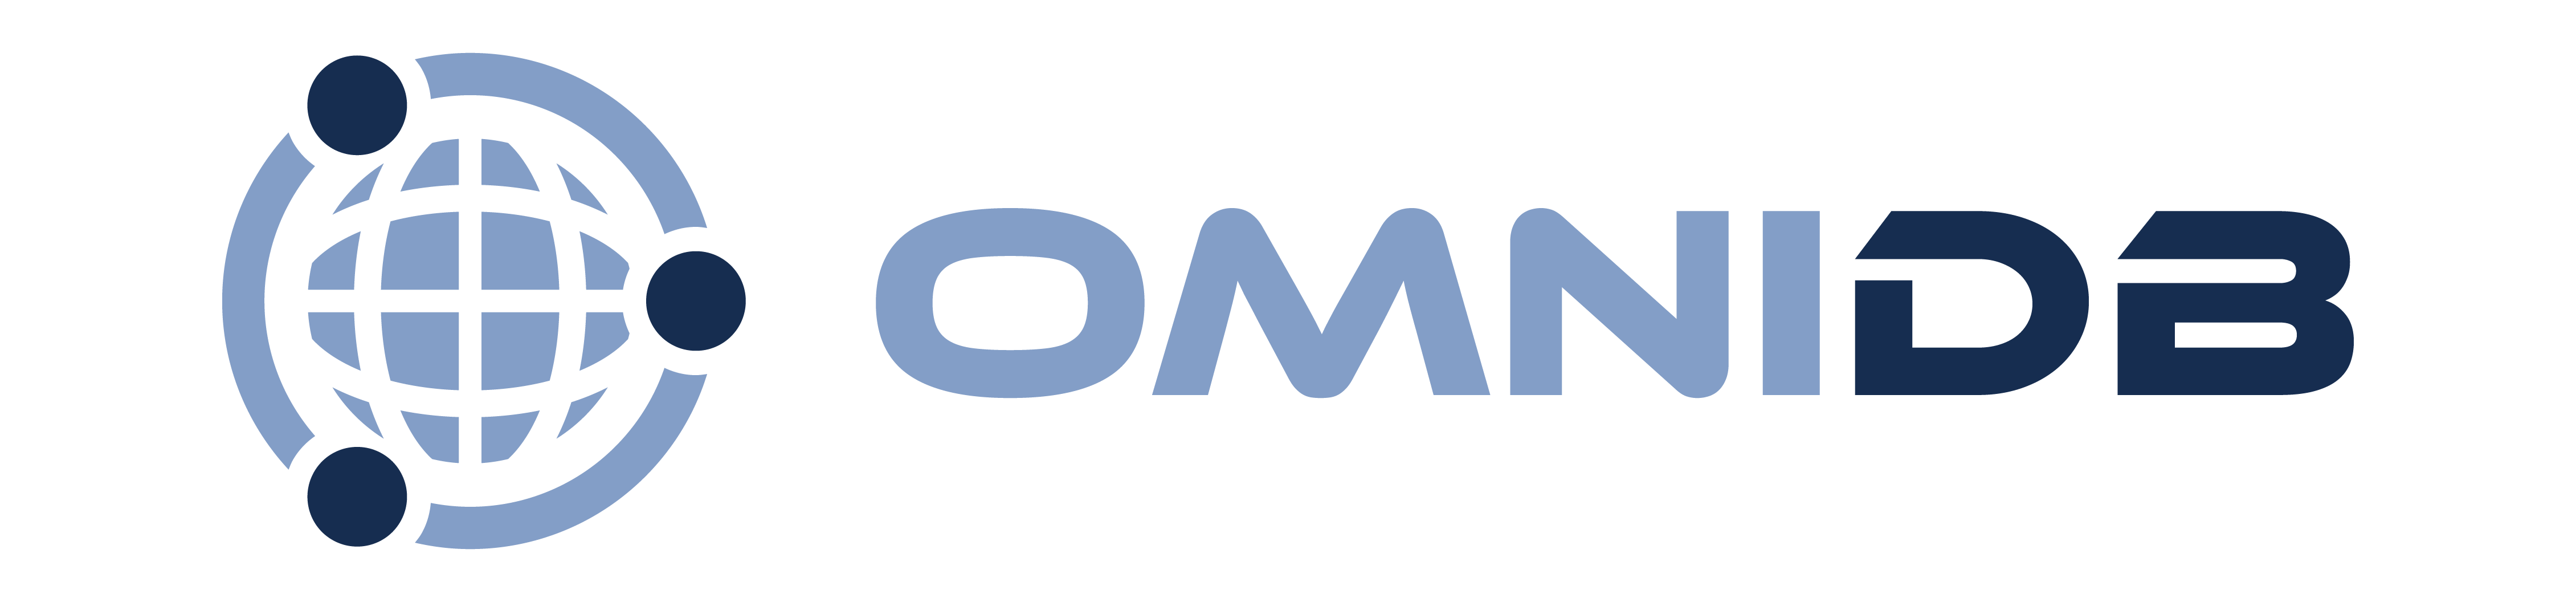 OmniDB open source database management tool